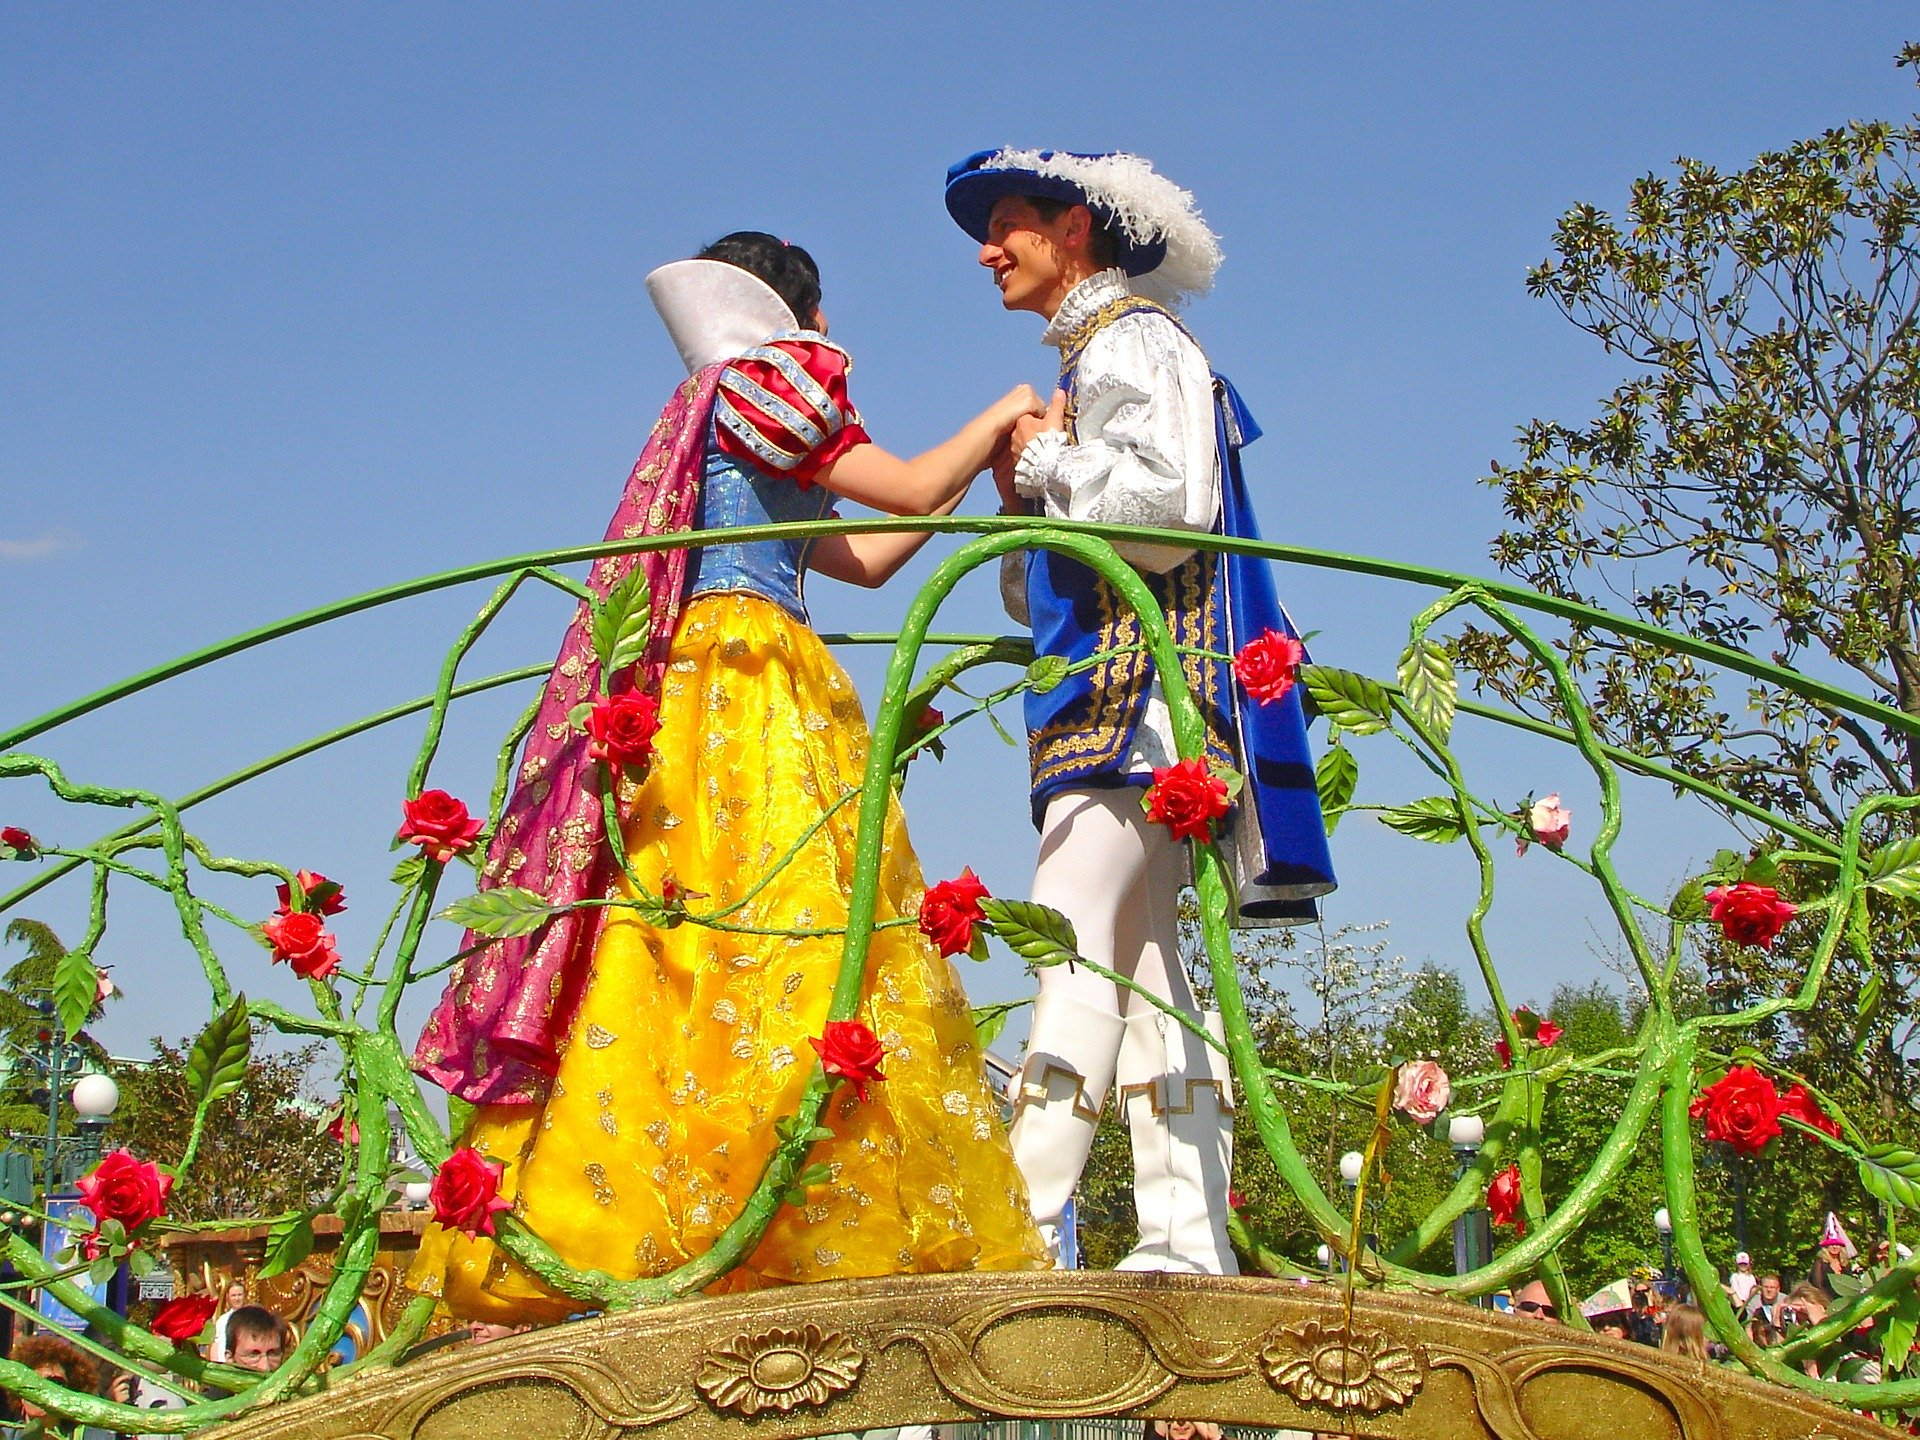 Is A Magical Disney Wedding In Your Future?